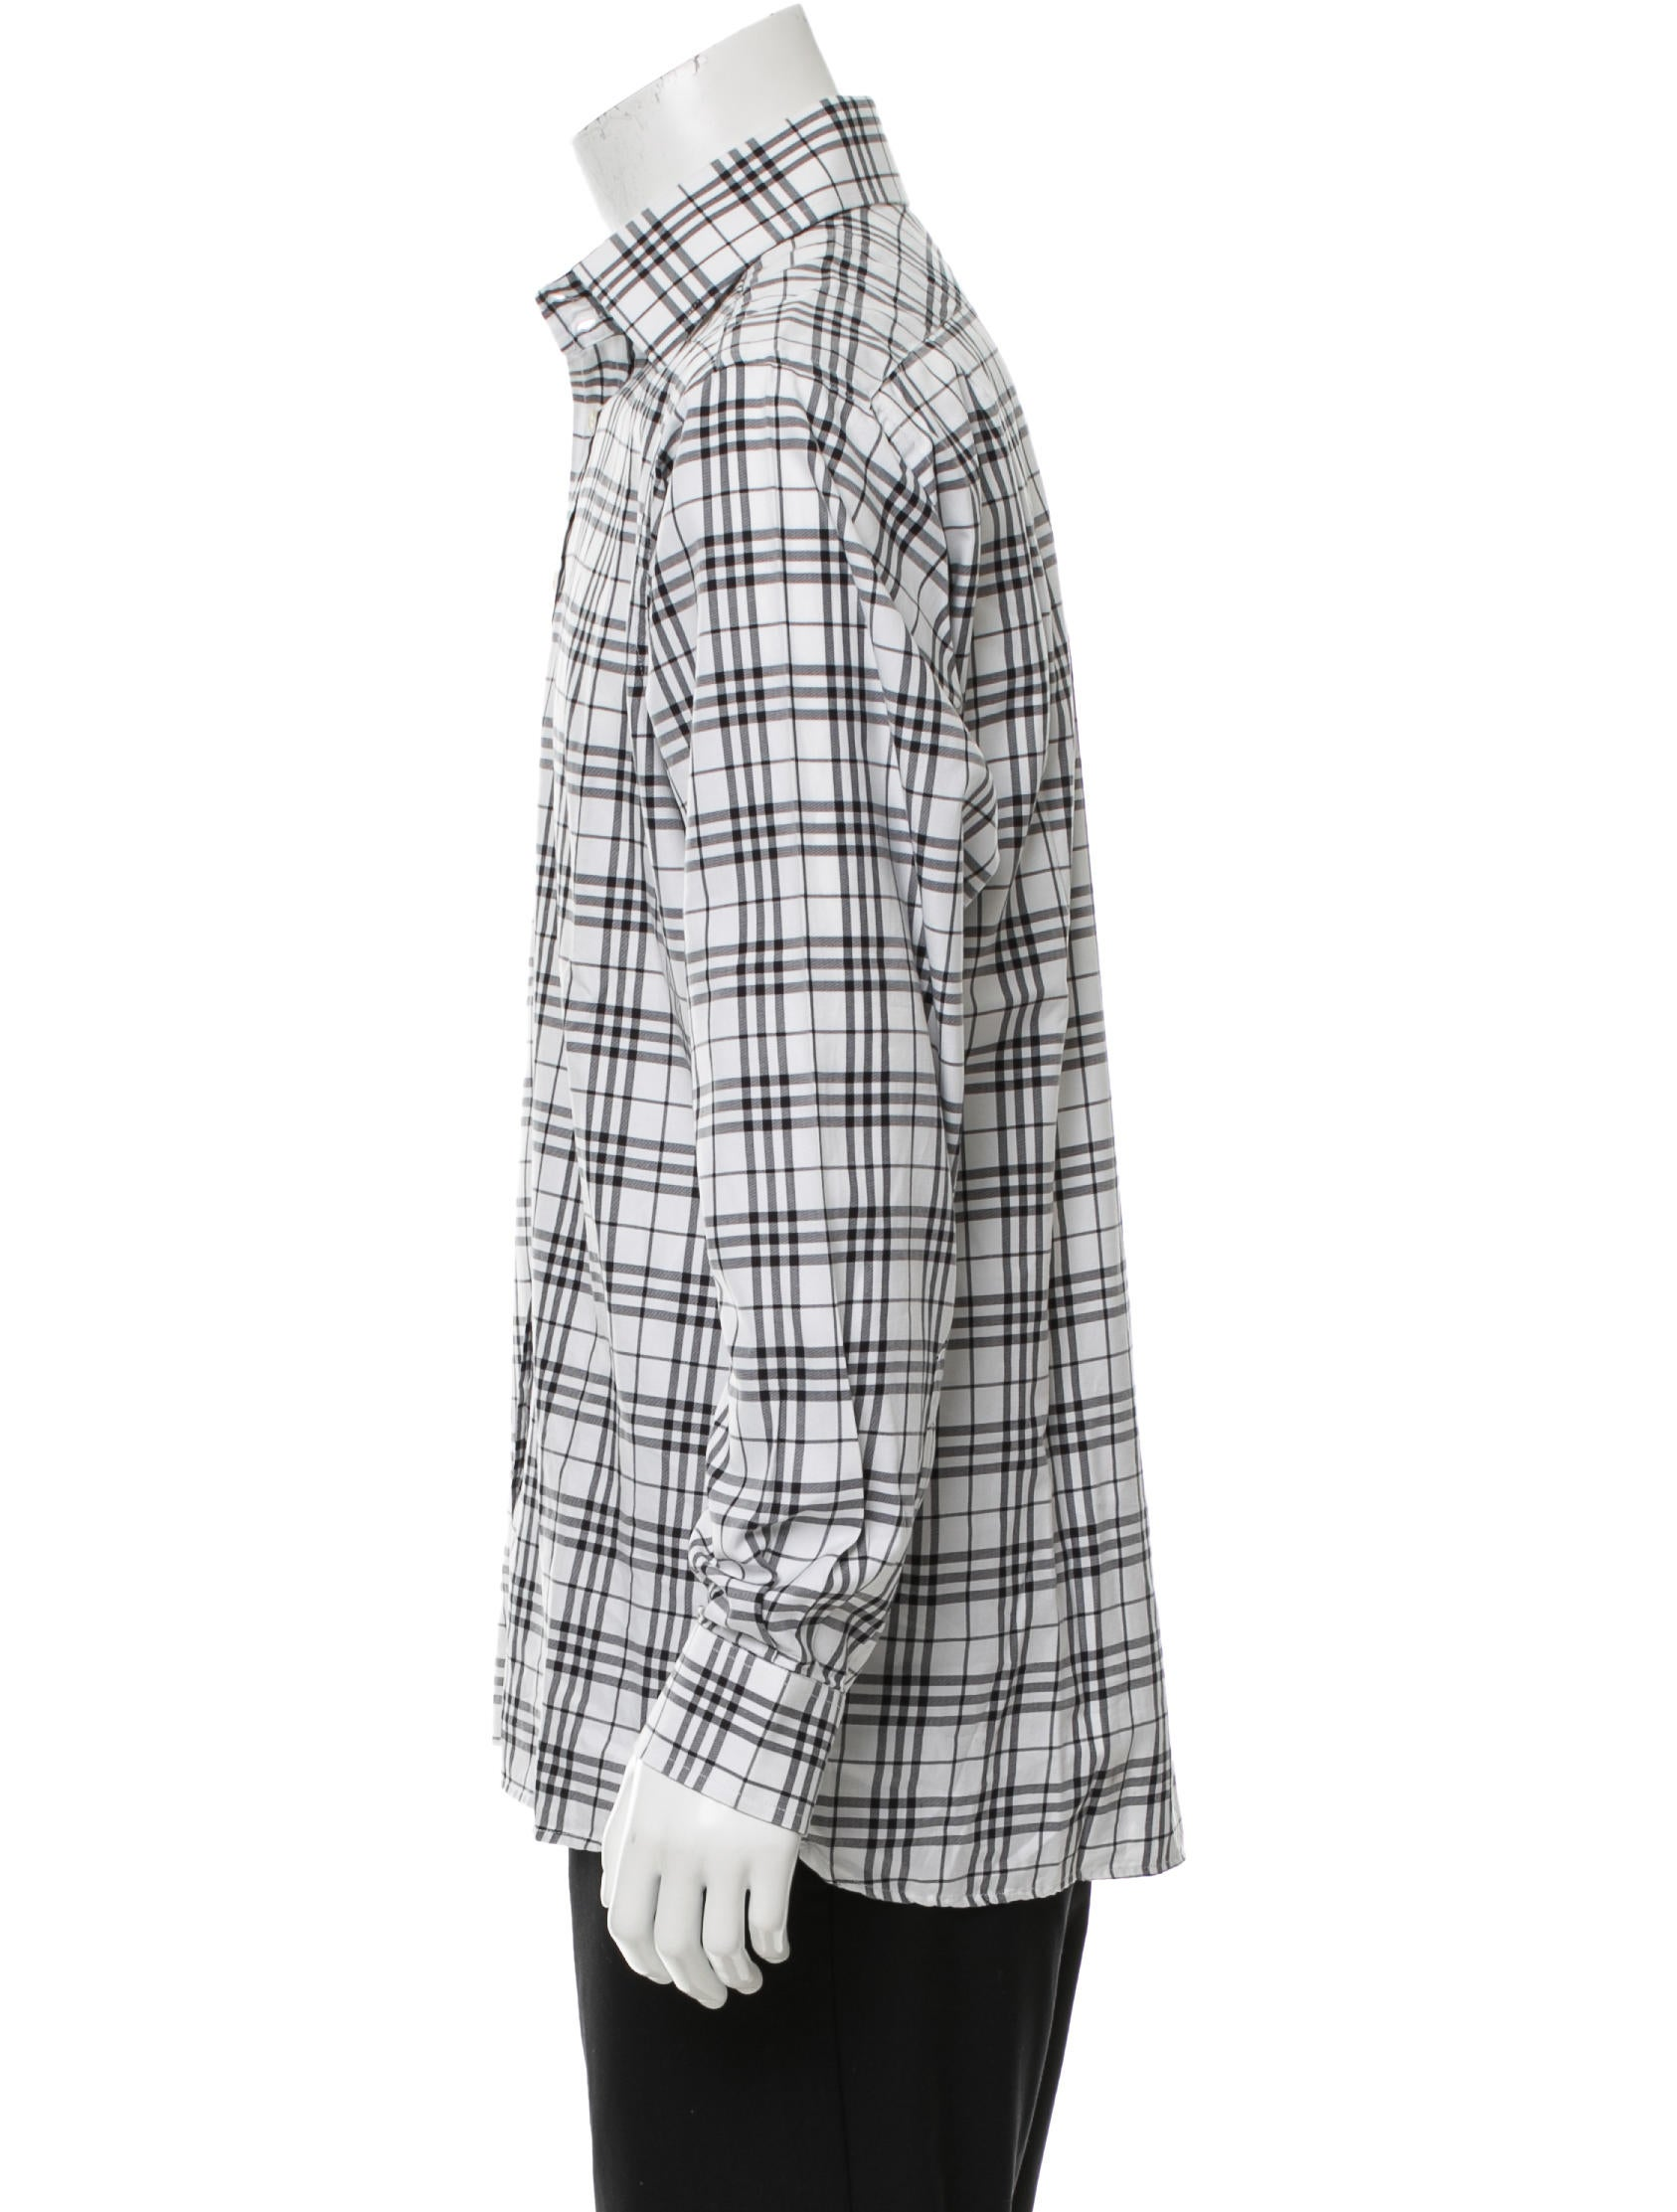 Burberry London Plaid Button-Up Shirt - Clothing ...